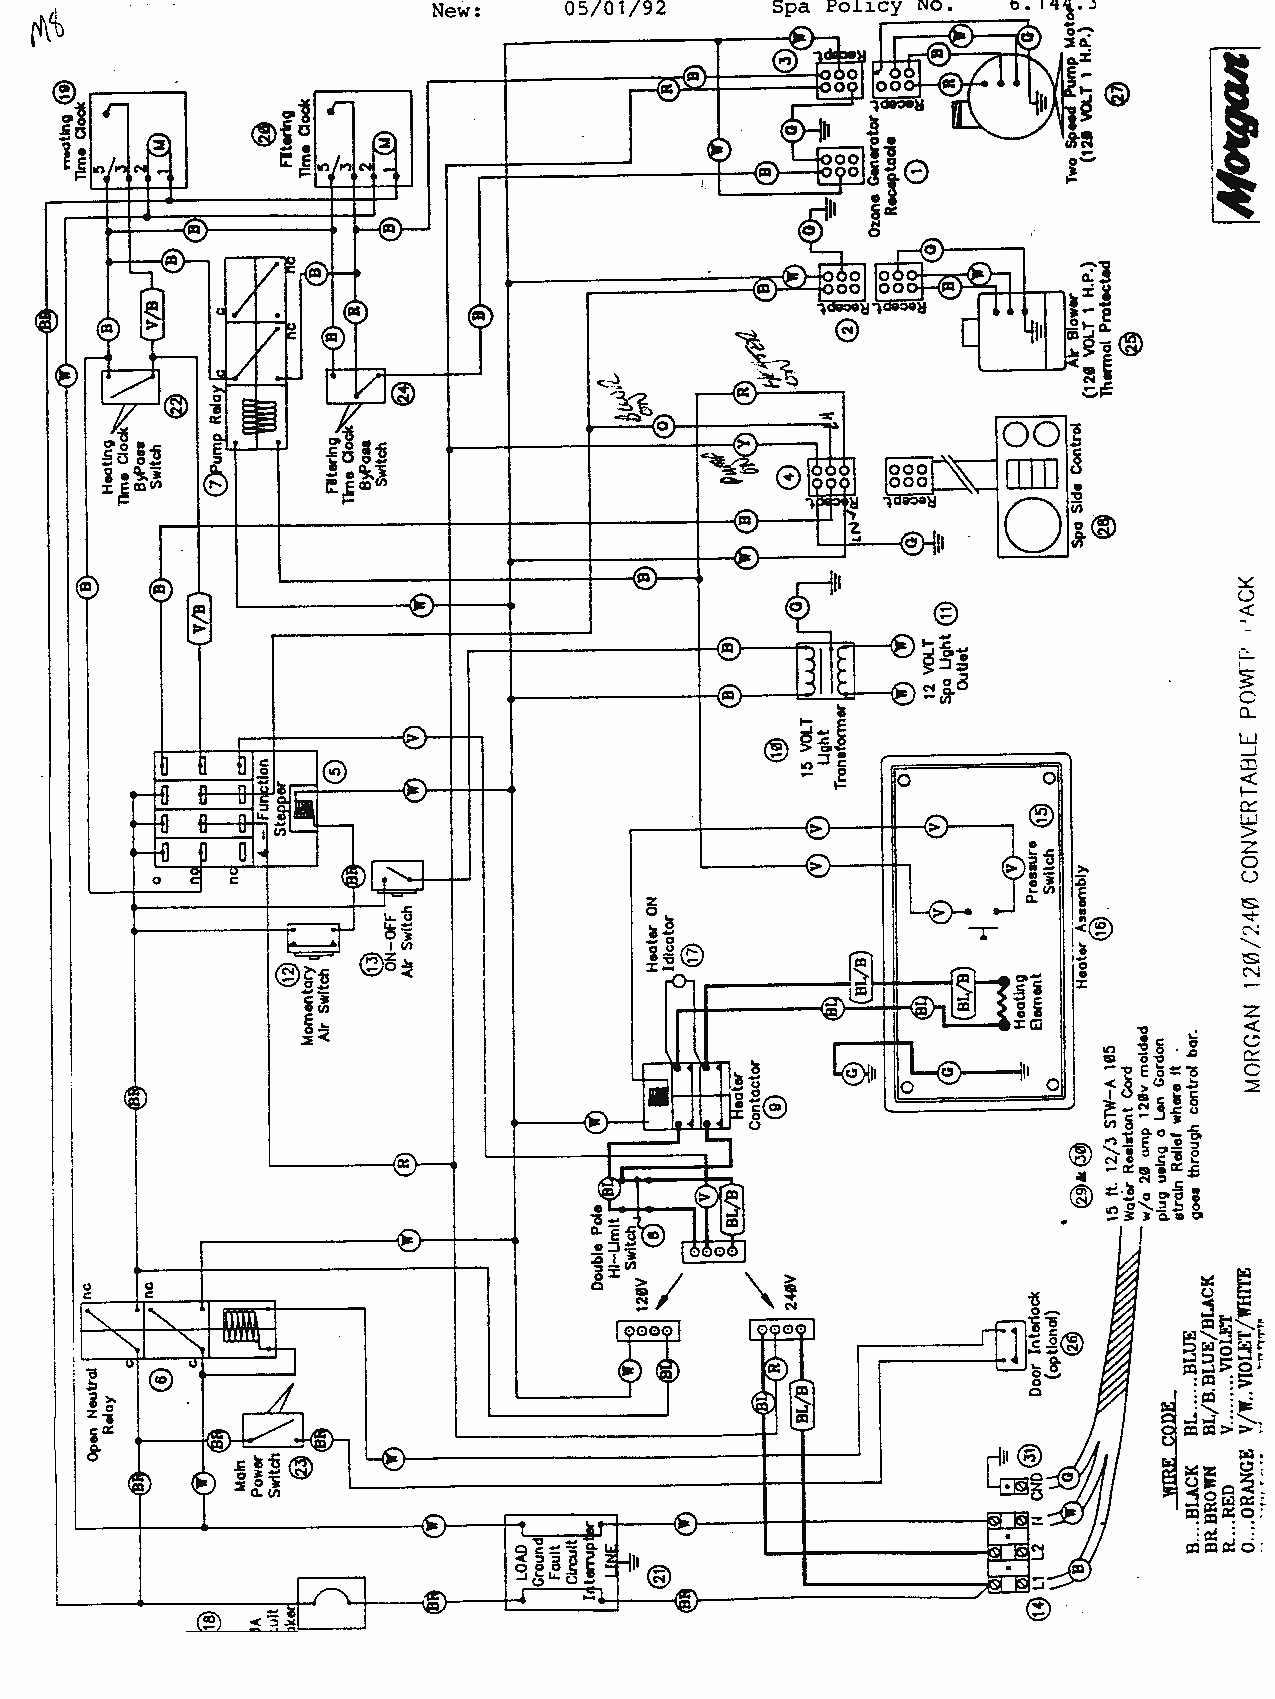 Hot Tub Wiring Schematic Free Wiring Diagram